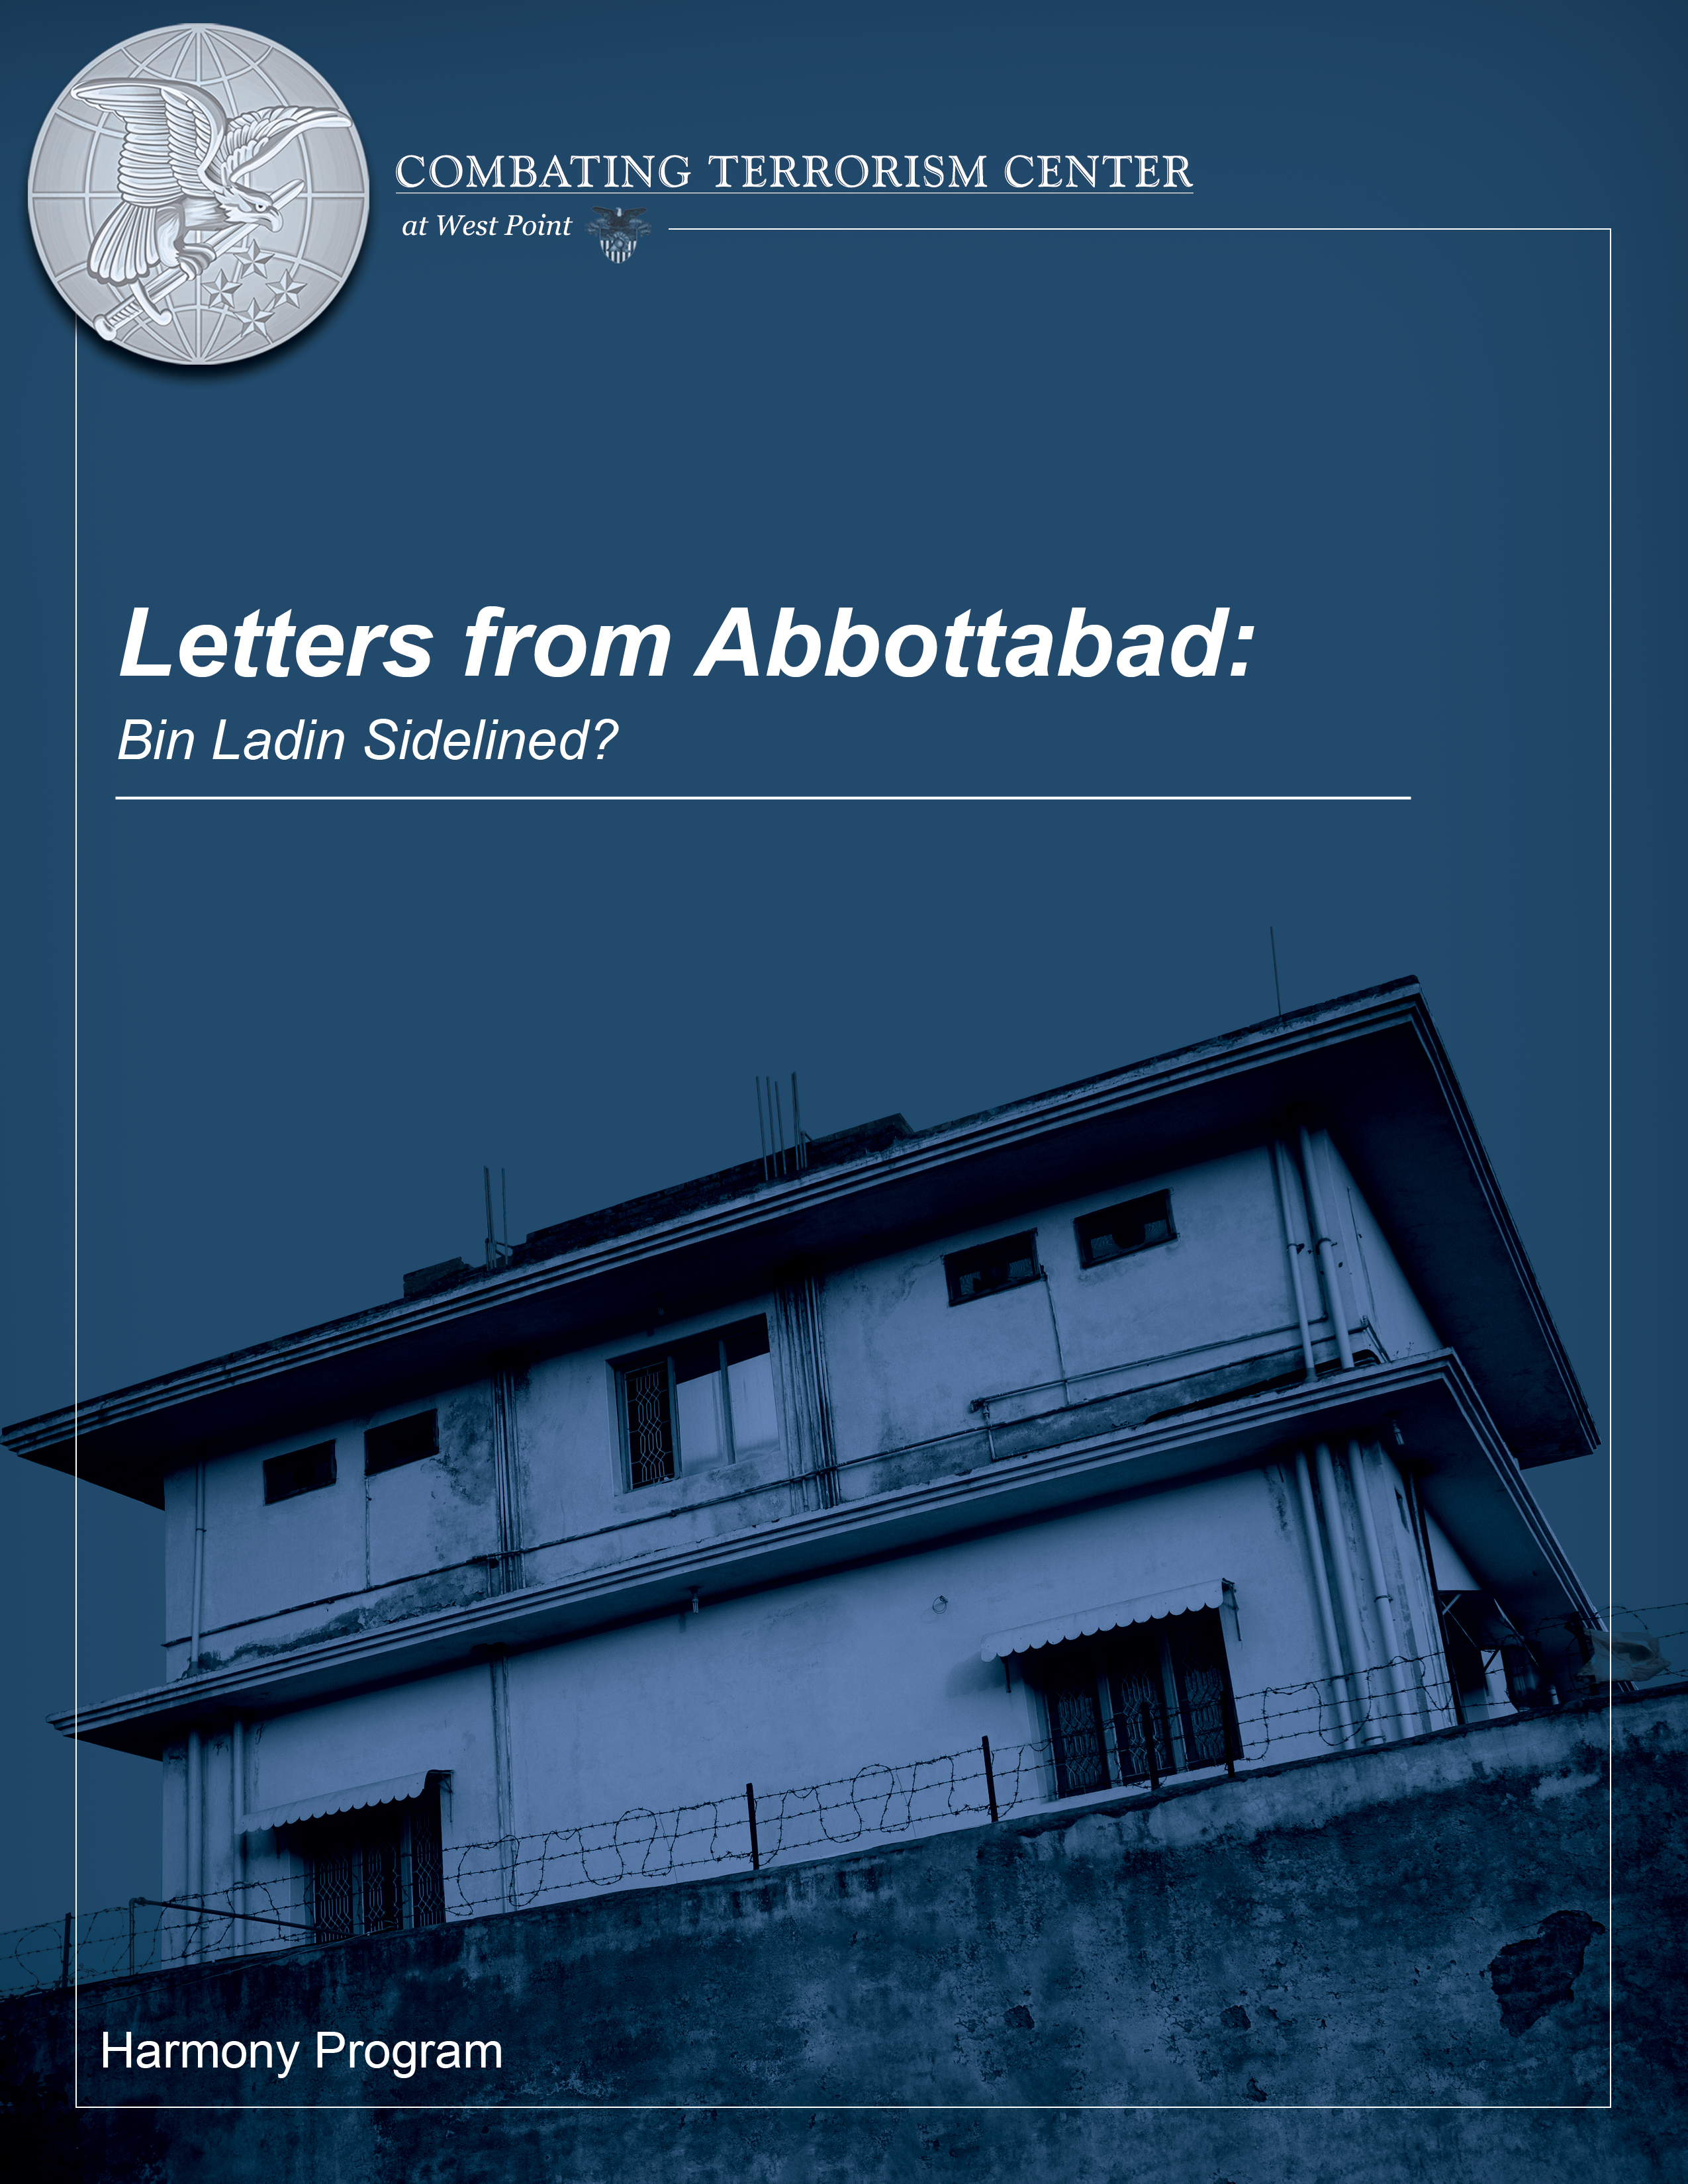 Letters From Abbottabad Bin Ladin Sidelined Combating Terrorism